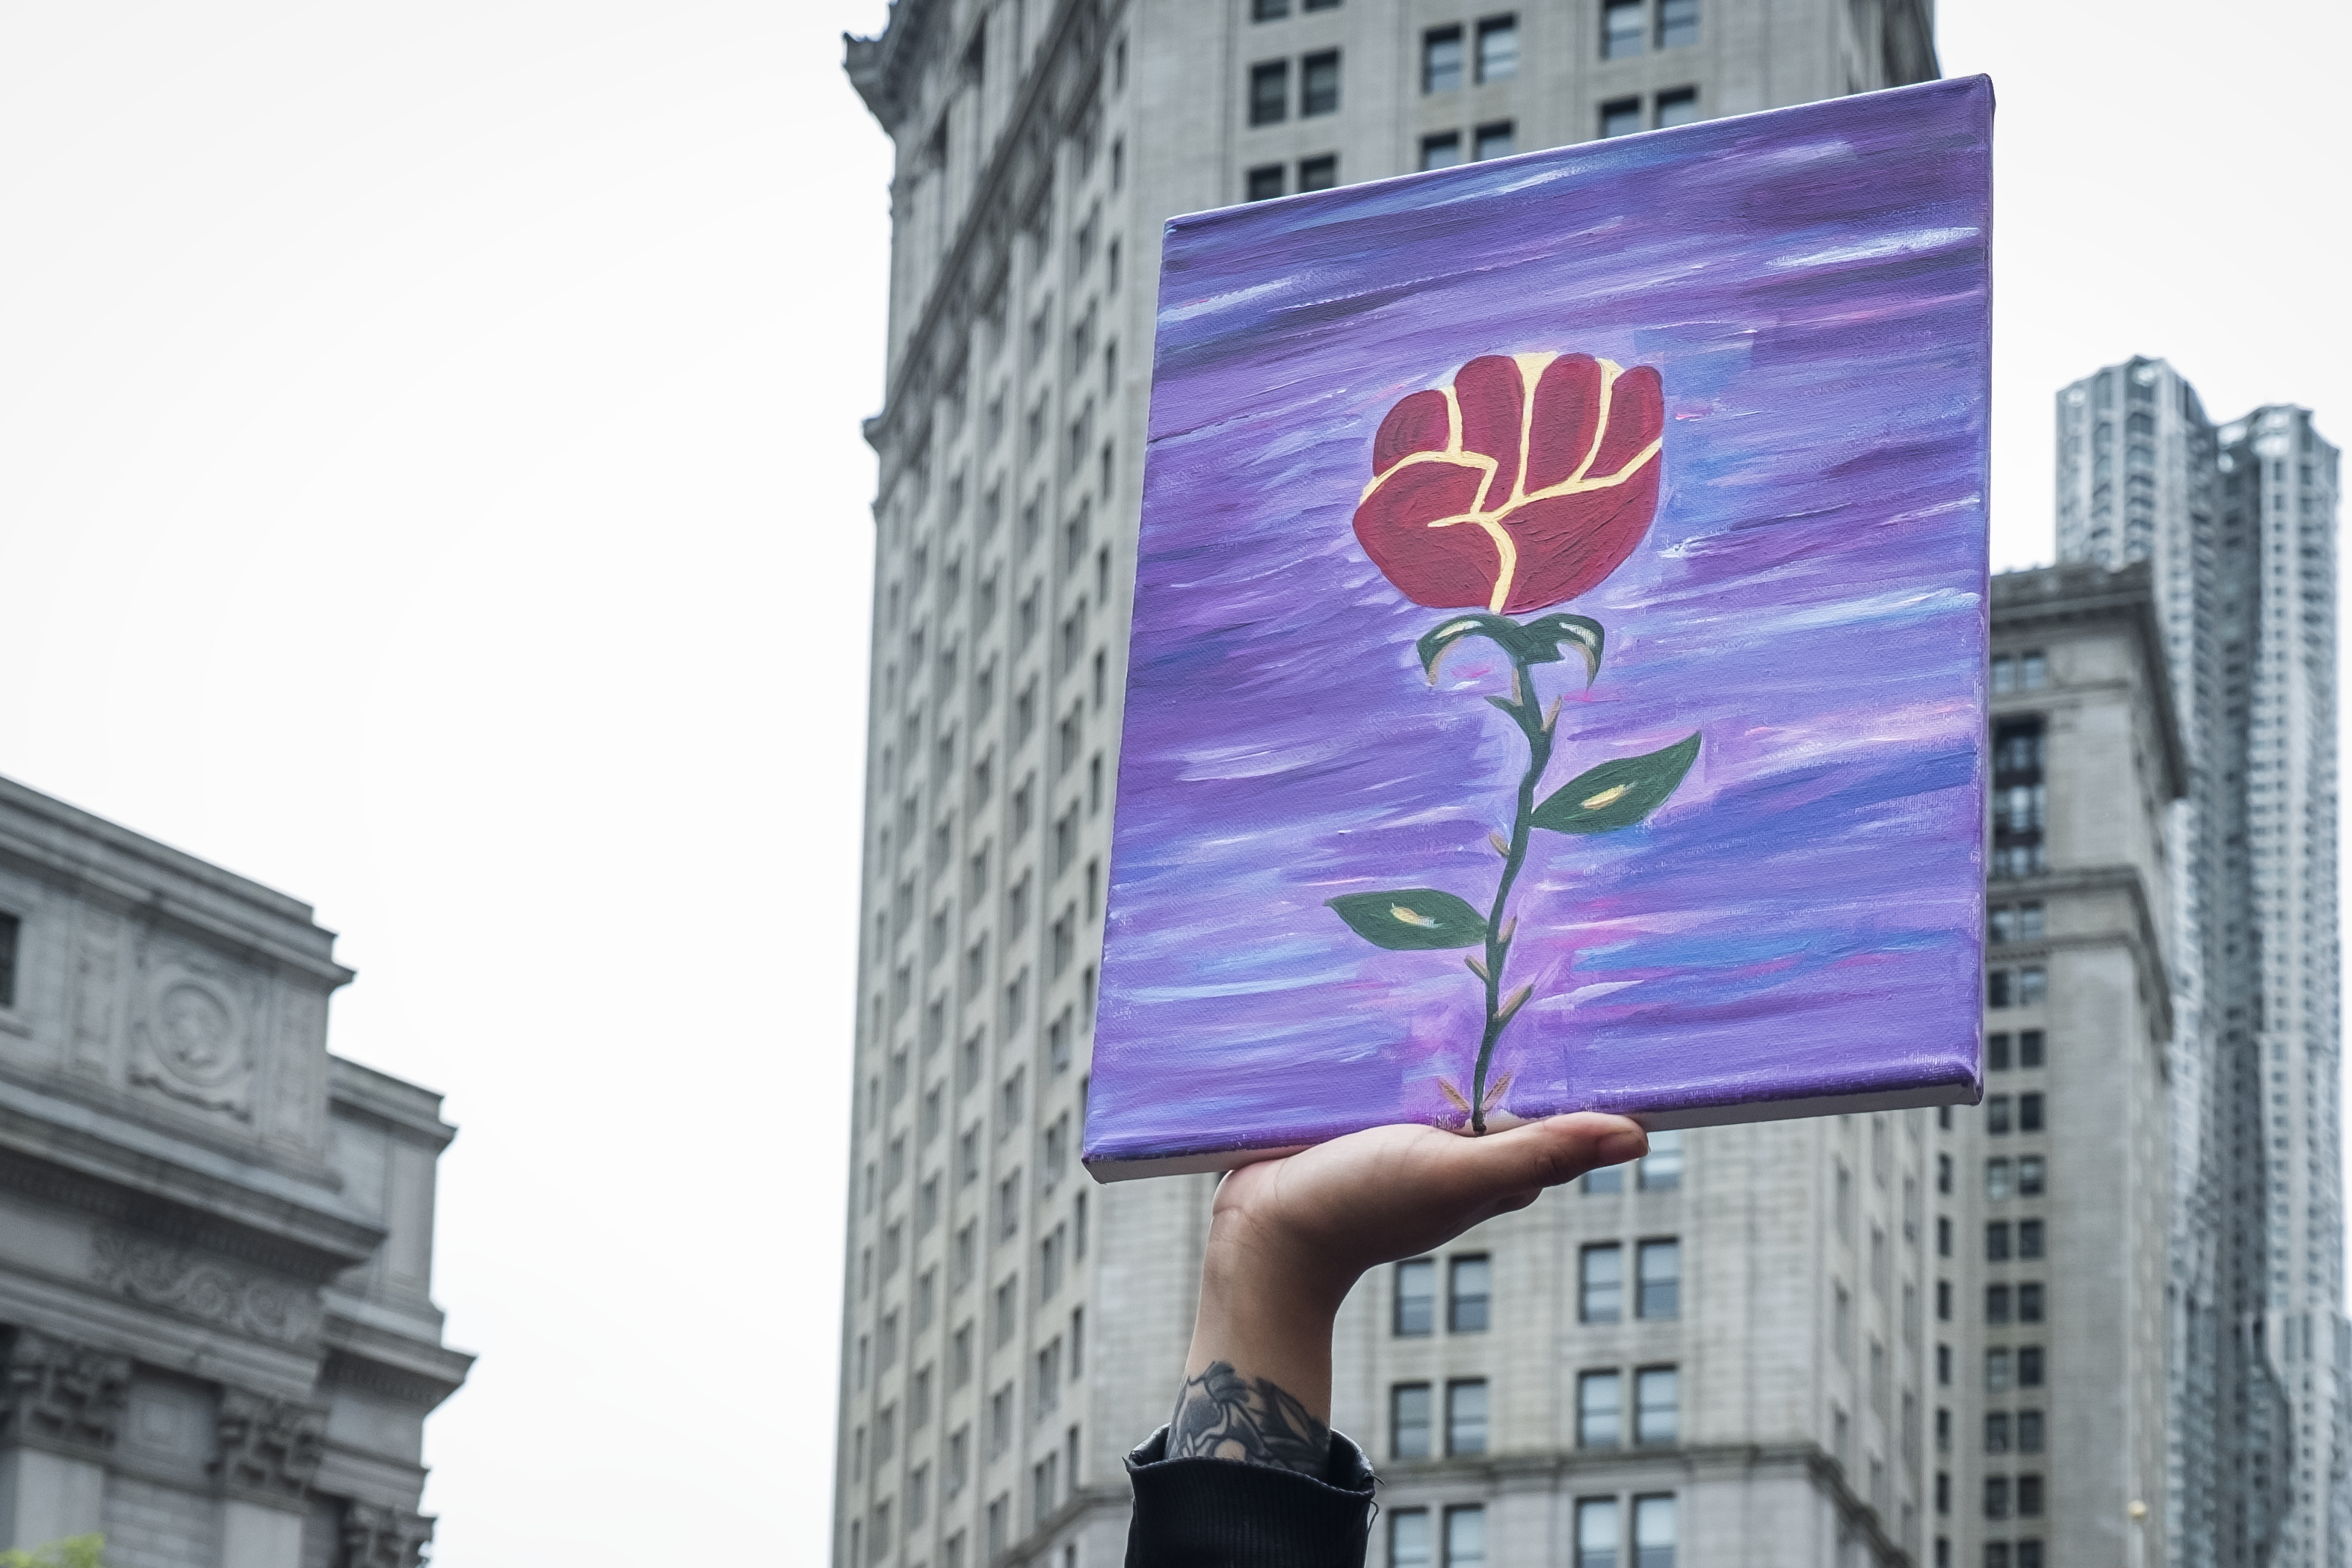 A protester carries a hand painted picture of a red fist in the air at the top of a flower made to resemble a rose.